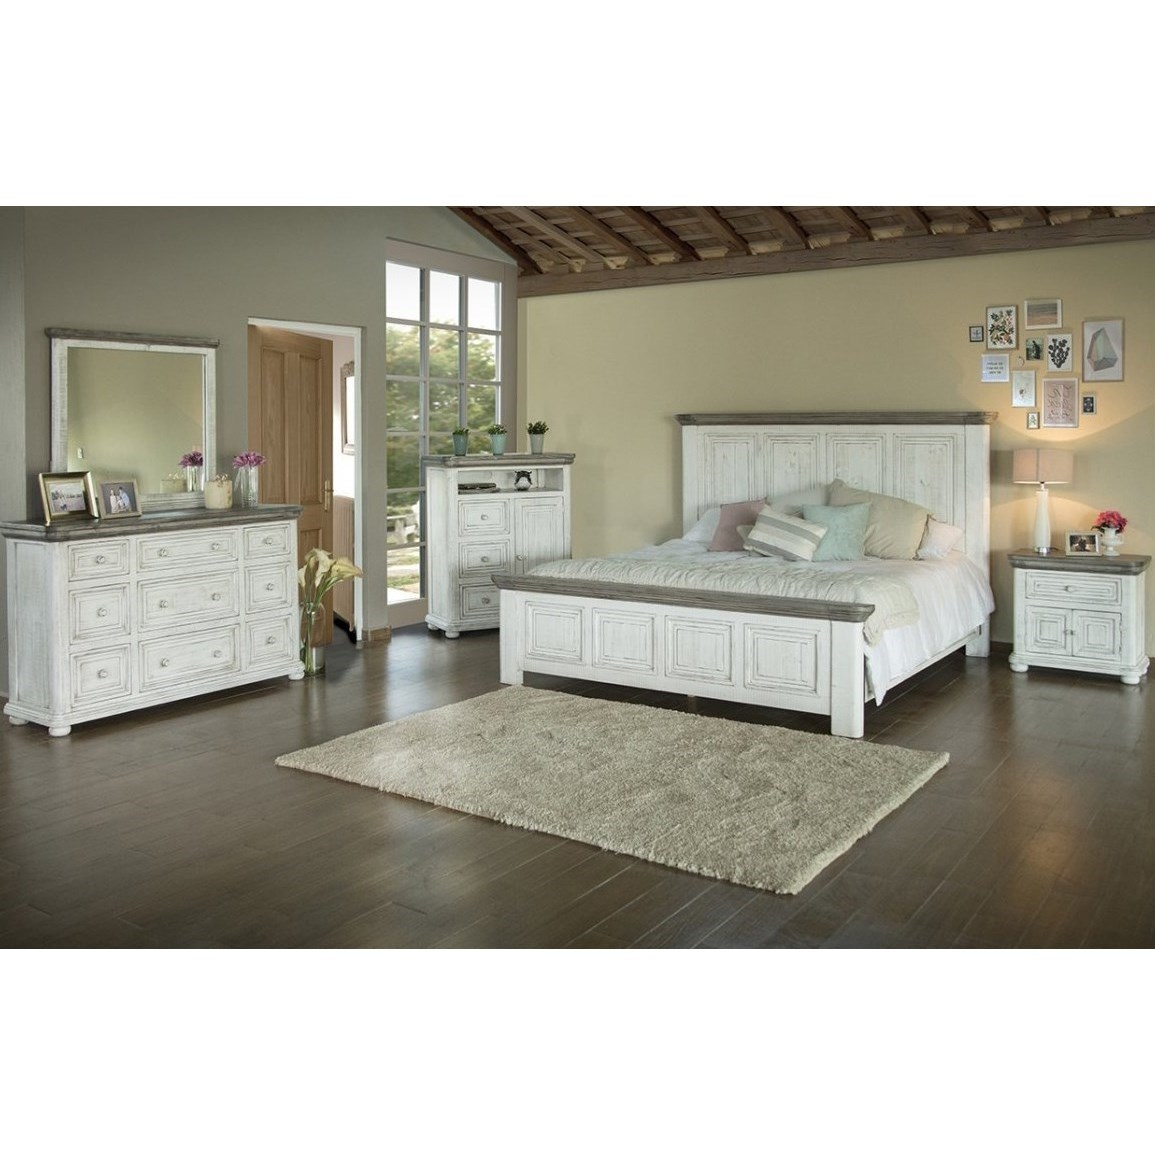 768 Luna King Bedroom Group at Williams & Kay